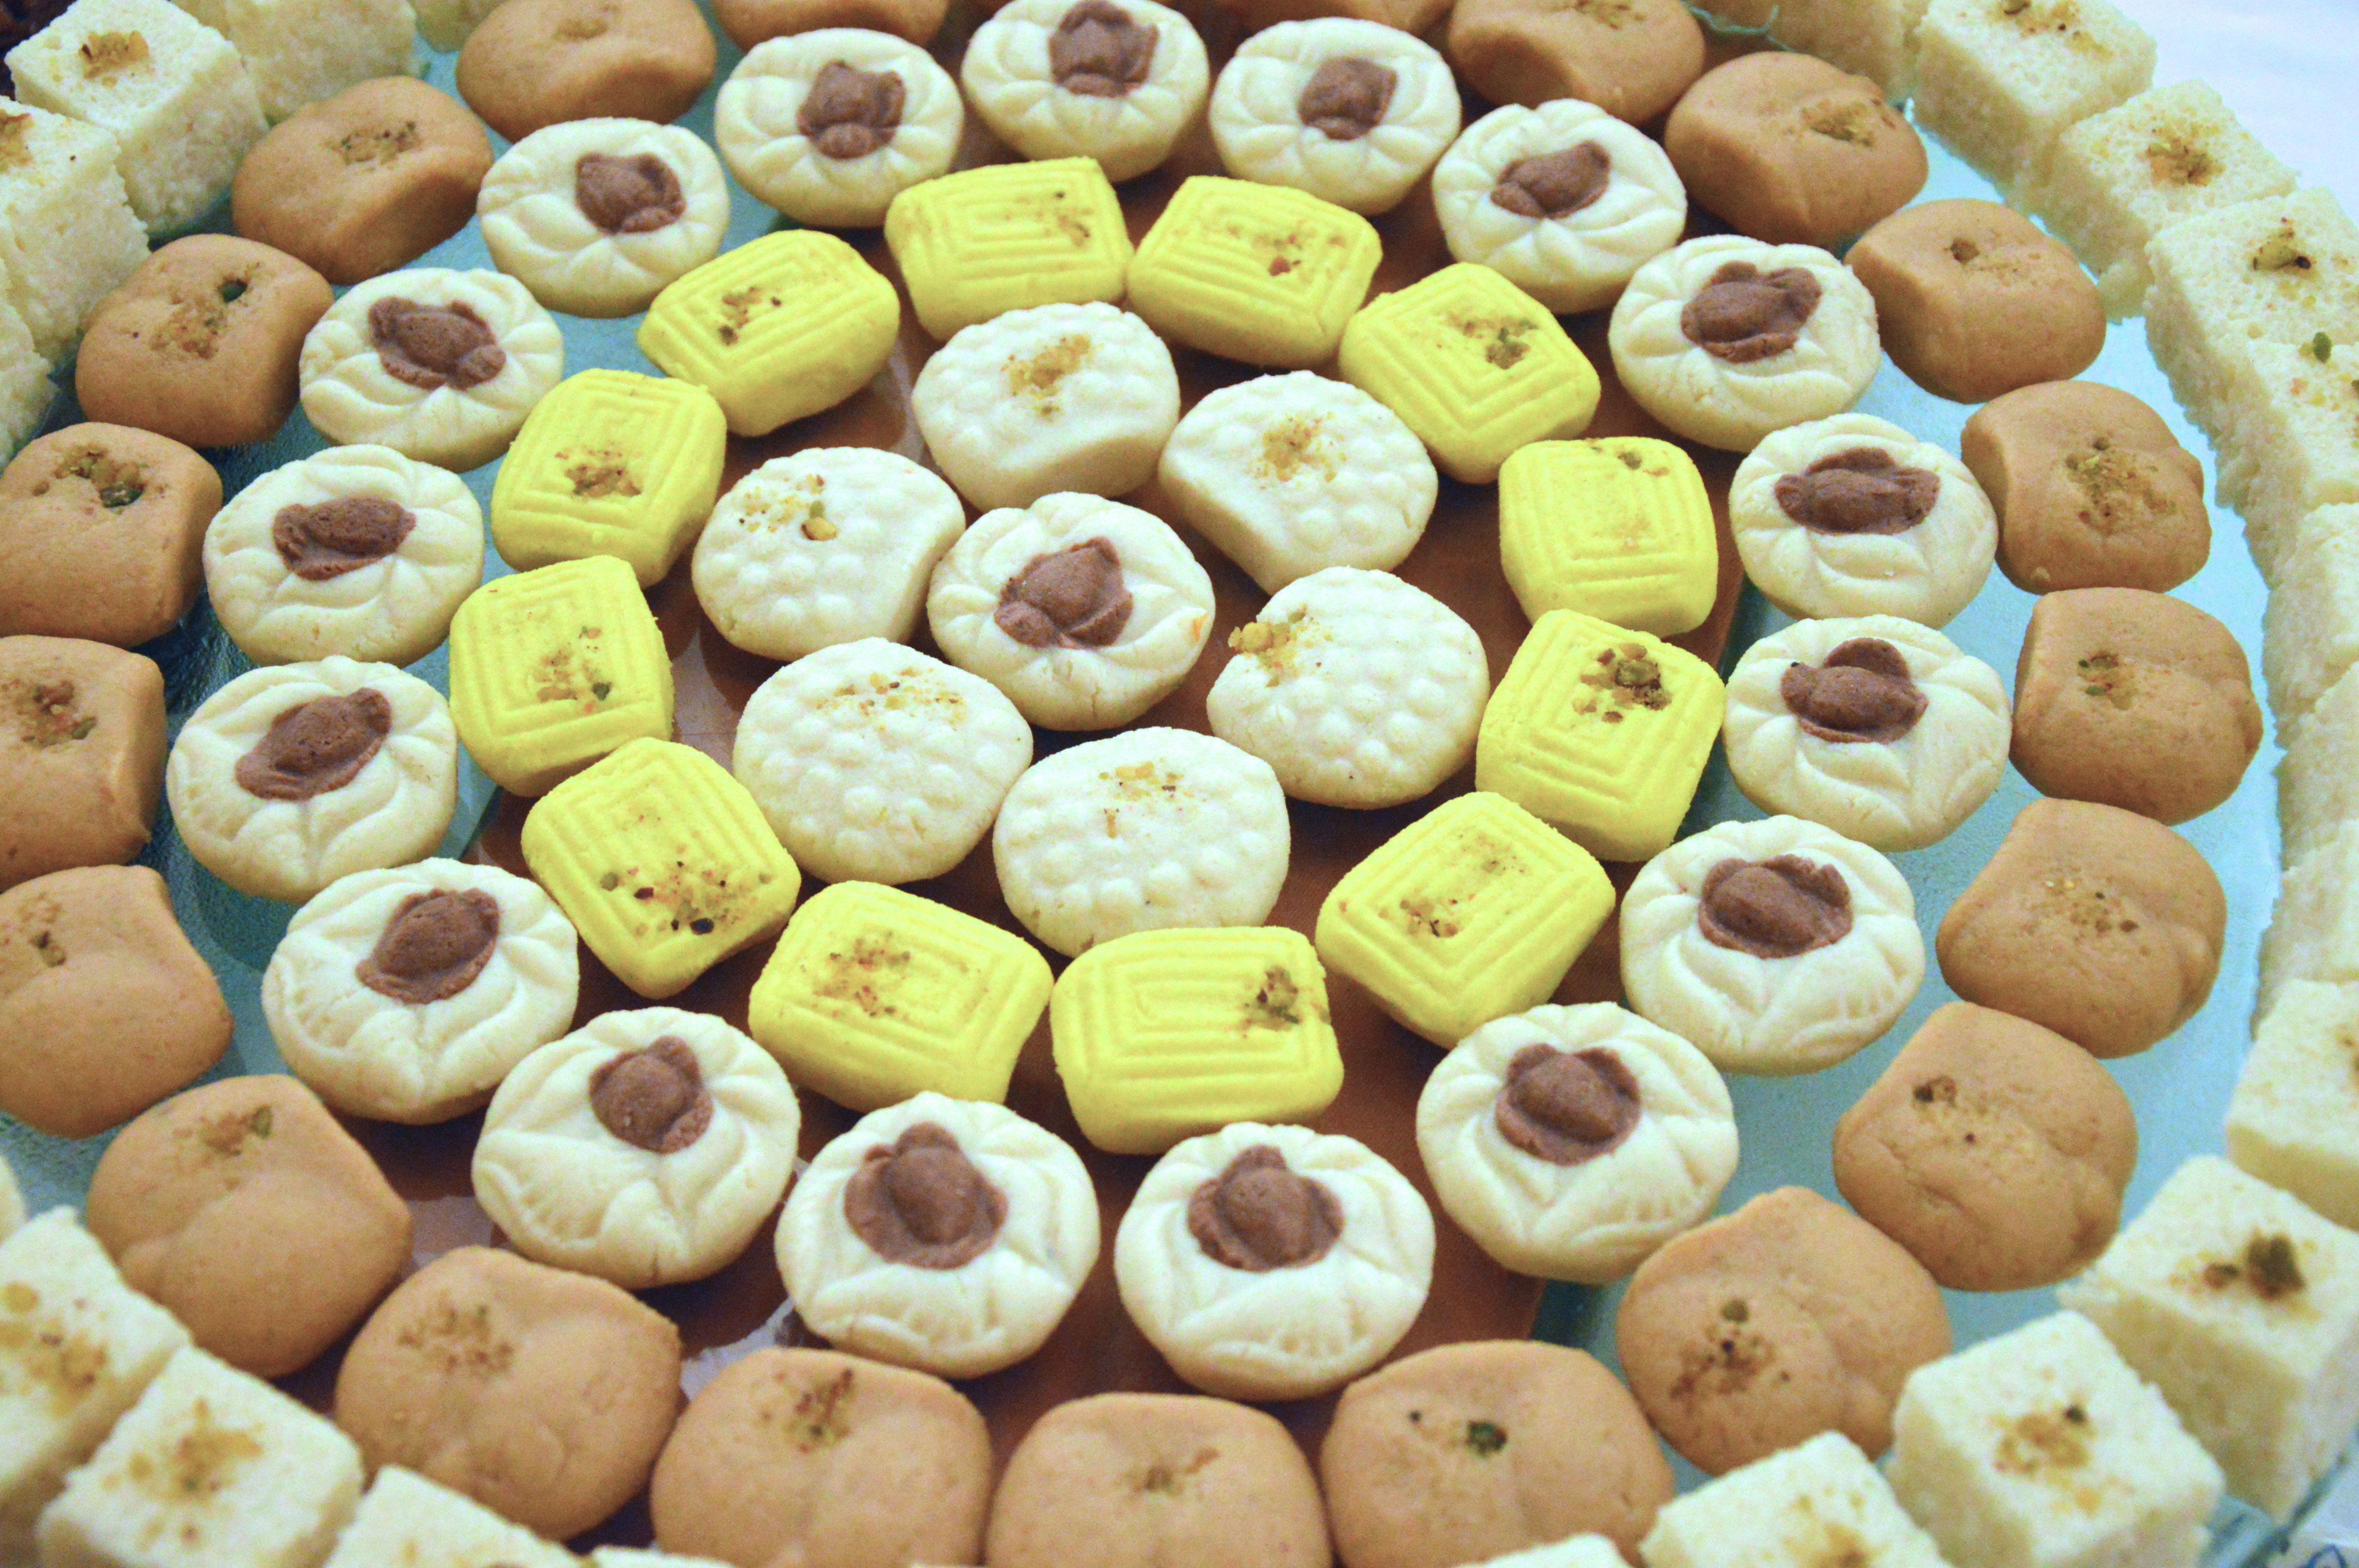 According to food historian Michael Krondl, if there is one dish that best represents the Bengal Renaissance it is the sandesh. Photo credit: Biswarup Ganguly/Wikimedia Commons [CC Creative Commons Attribution 3.0 Unported]